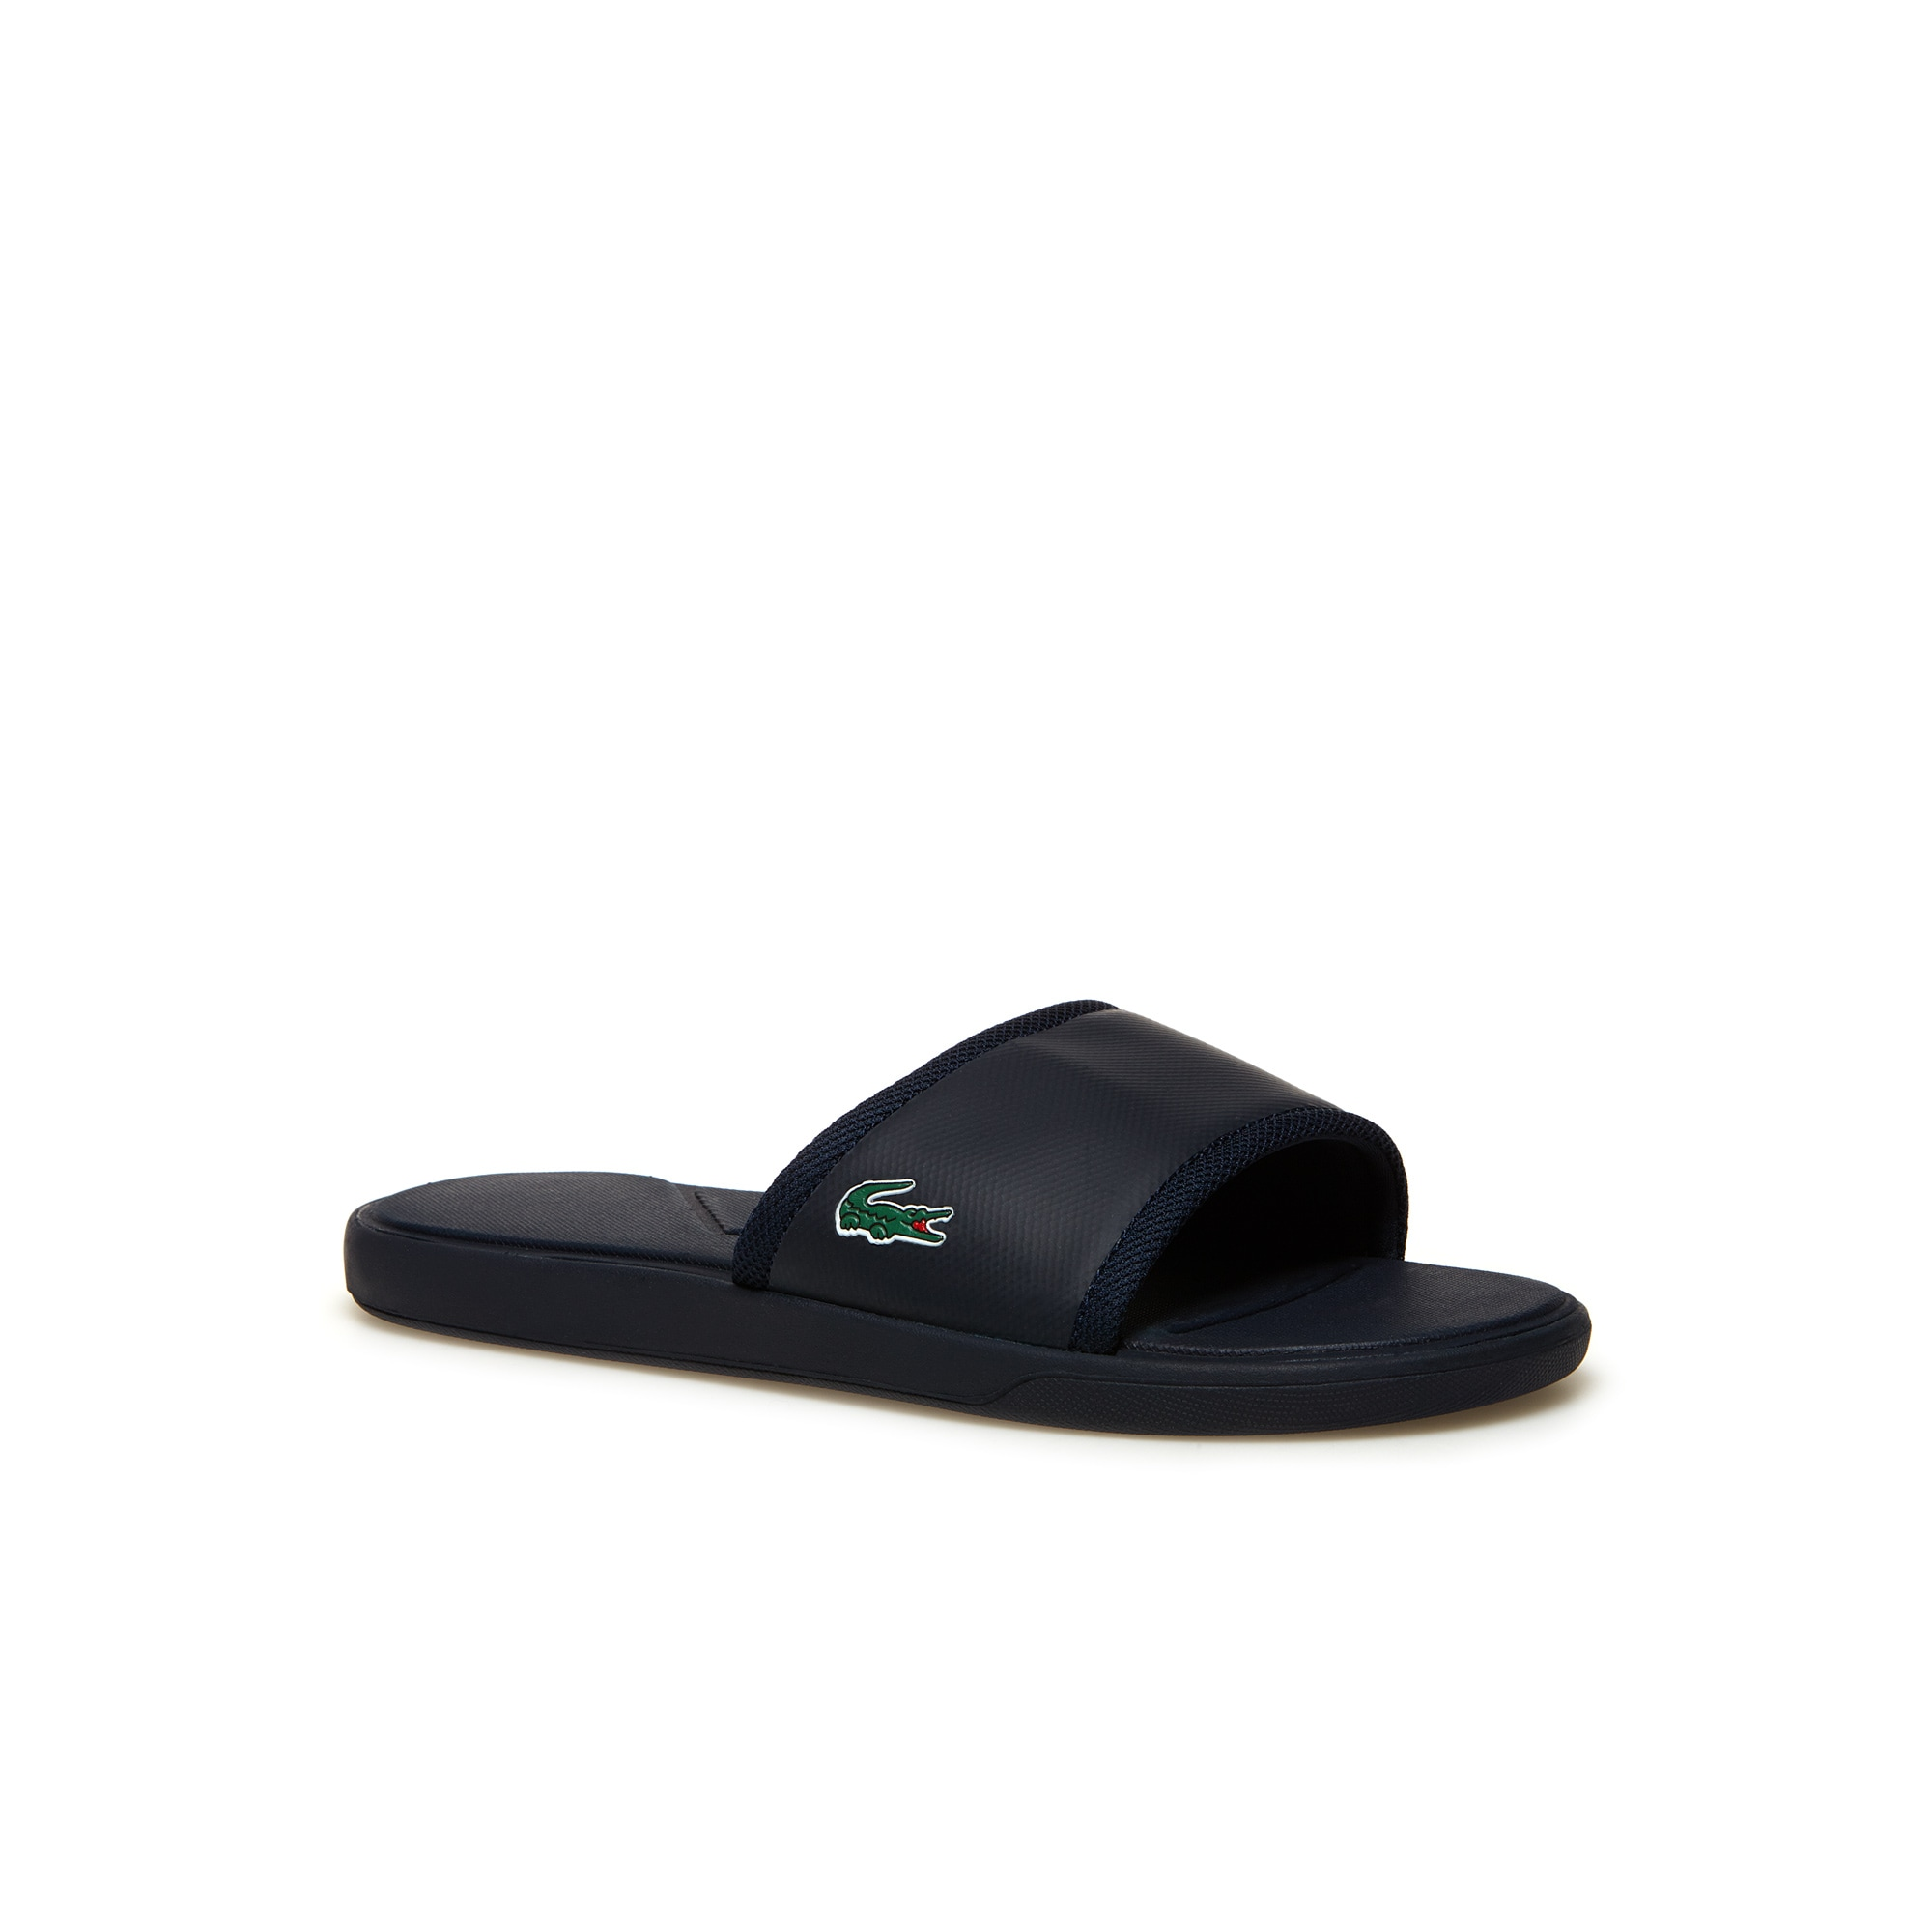 Chinelo L.30 Slide Sport Nautical masculino